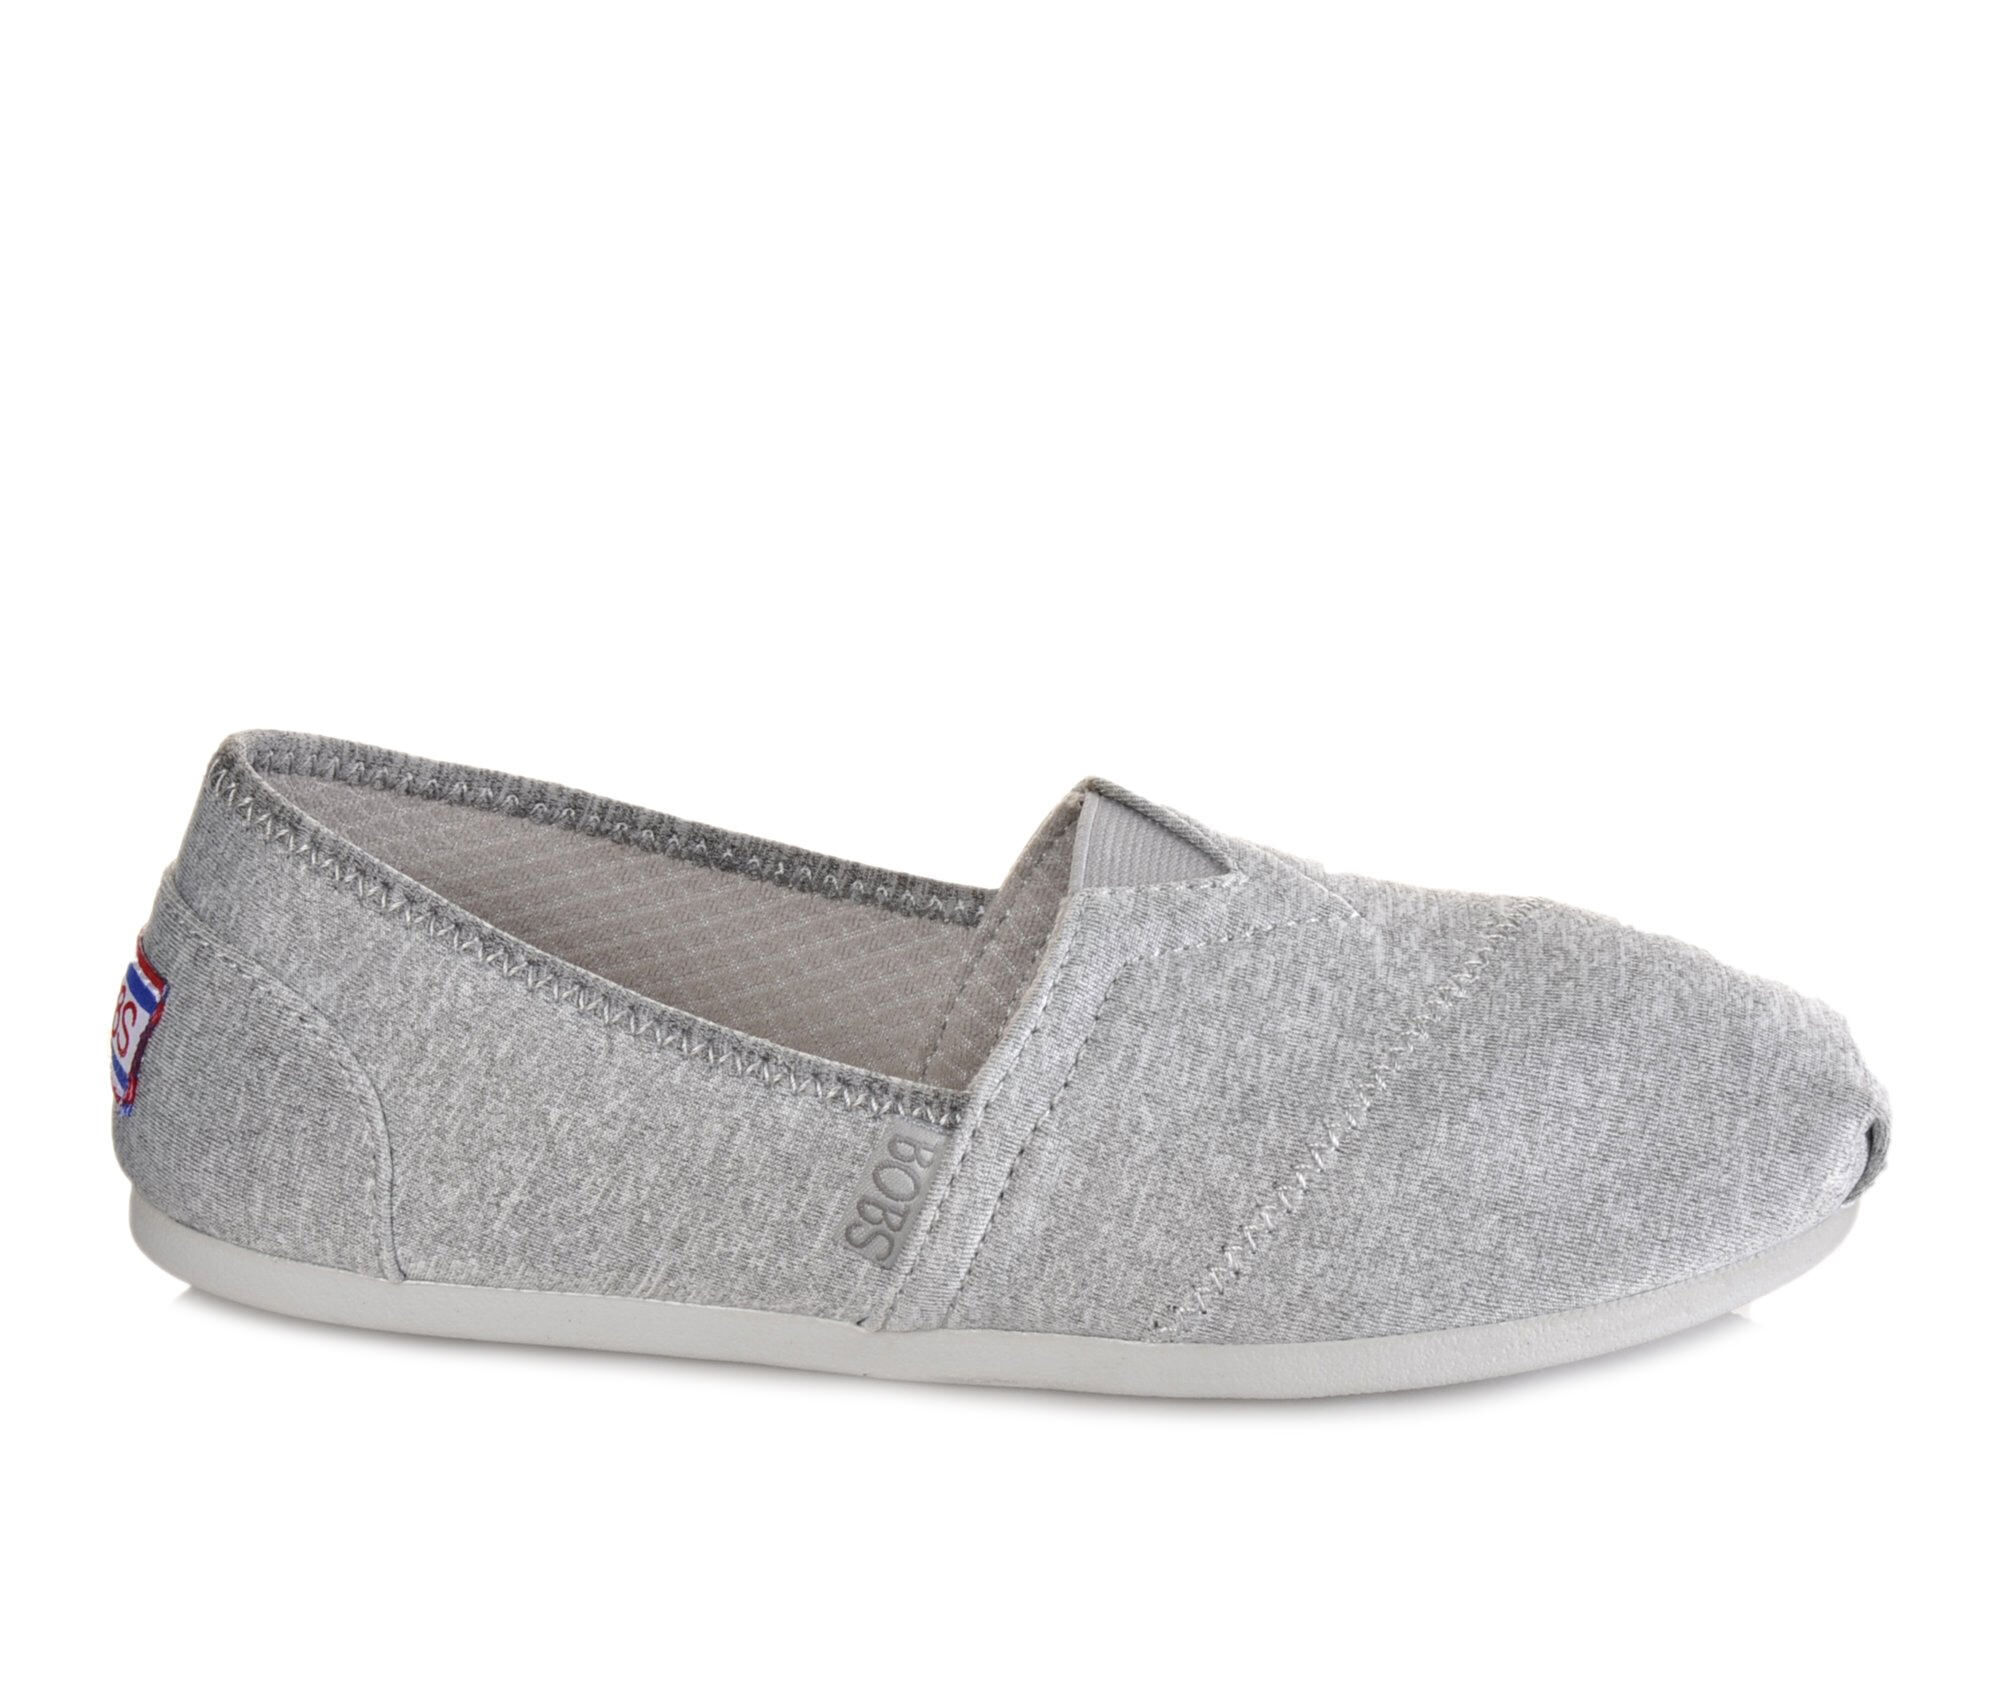 outlet locations sale online sale great deals Women's BOBS Express Yourself 33910 Casual Shoes in China cheap online sX34E00VM